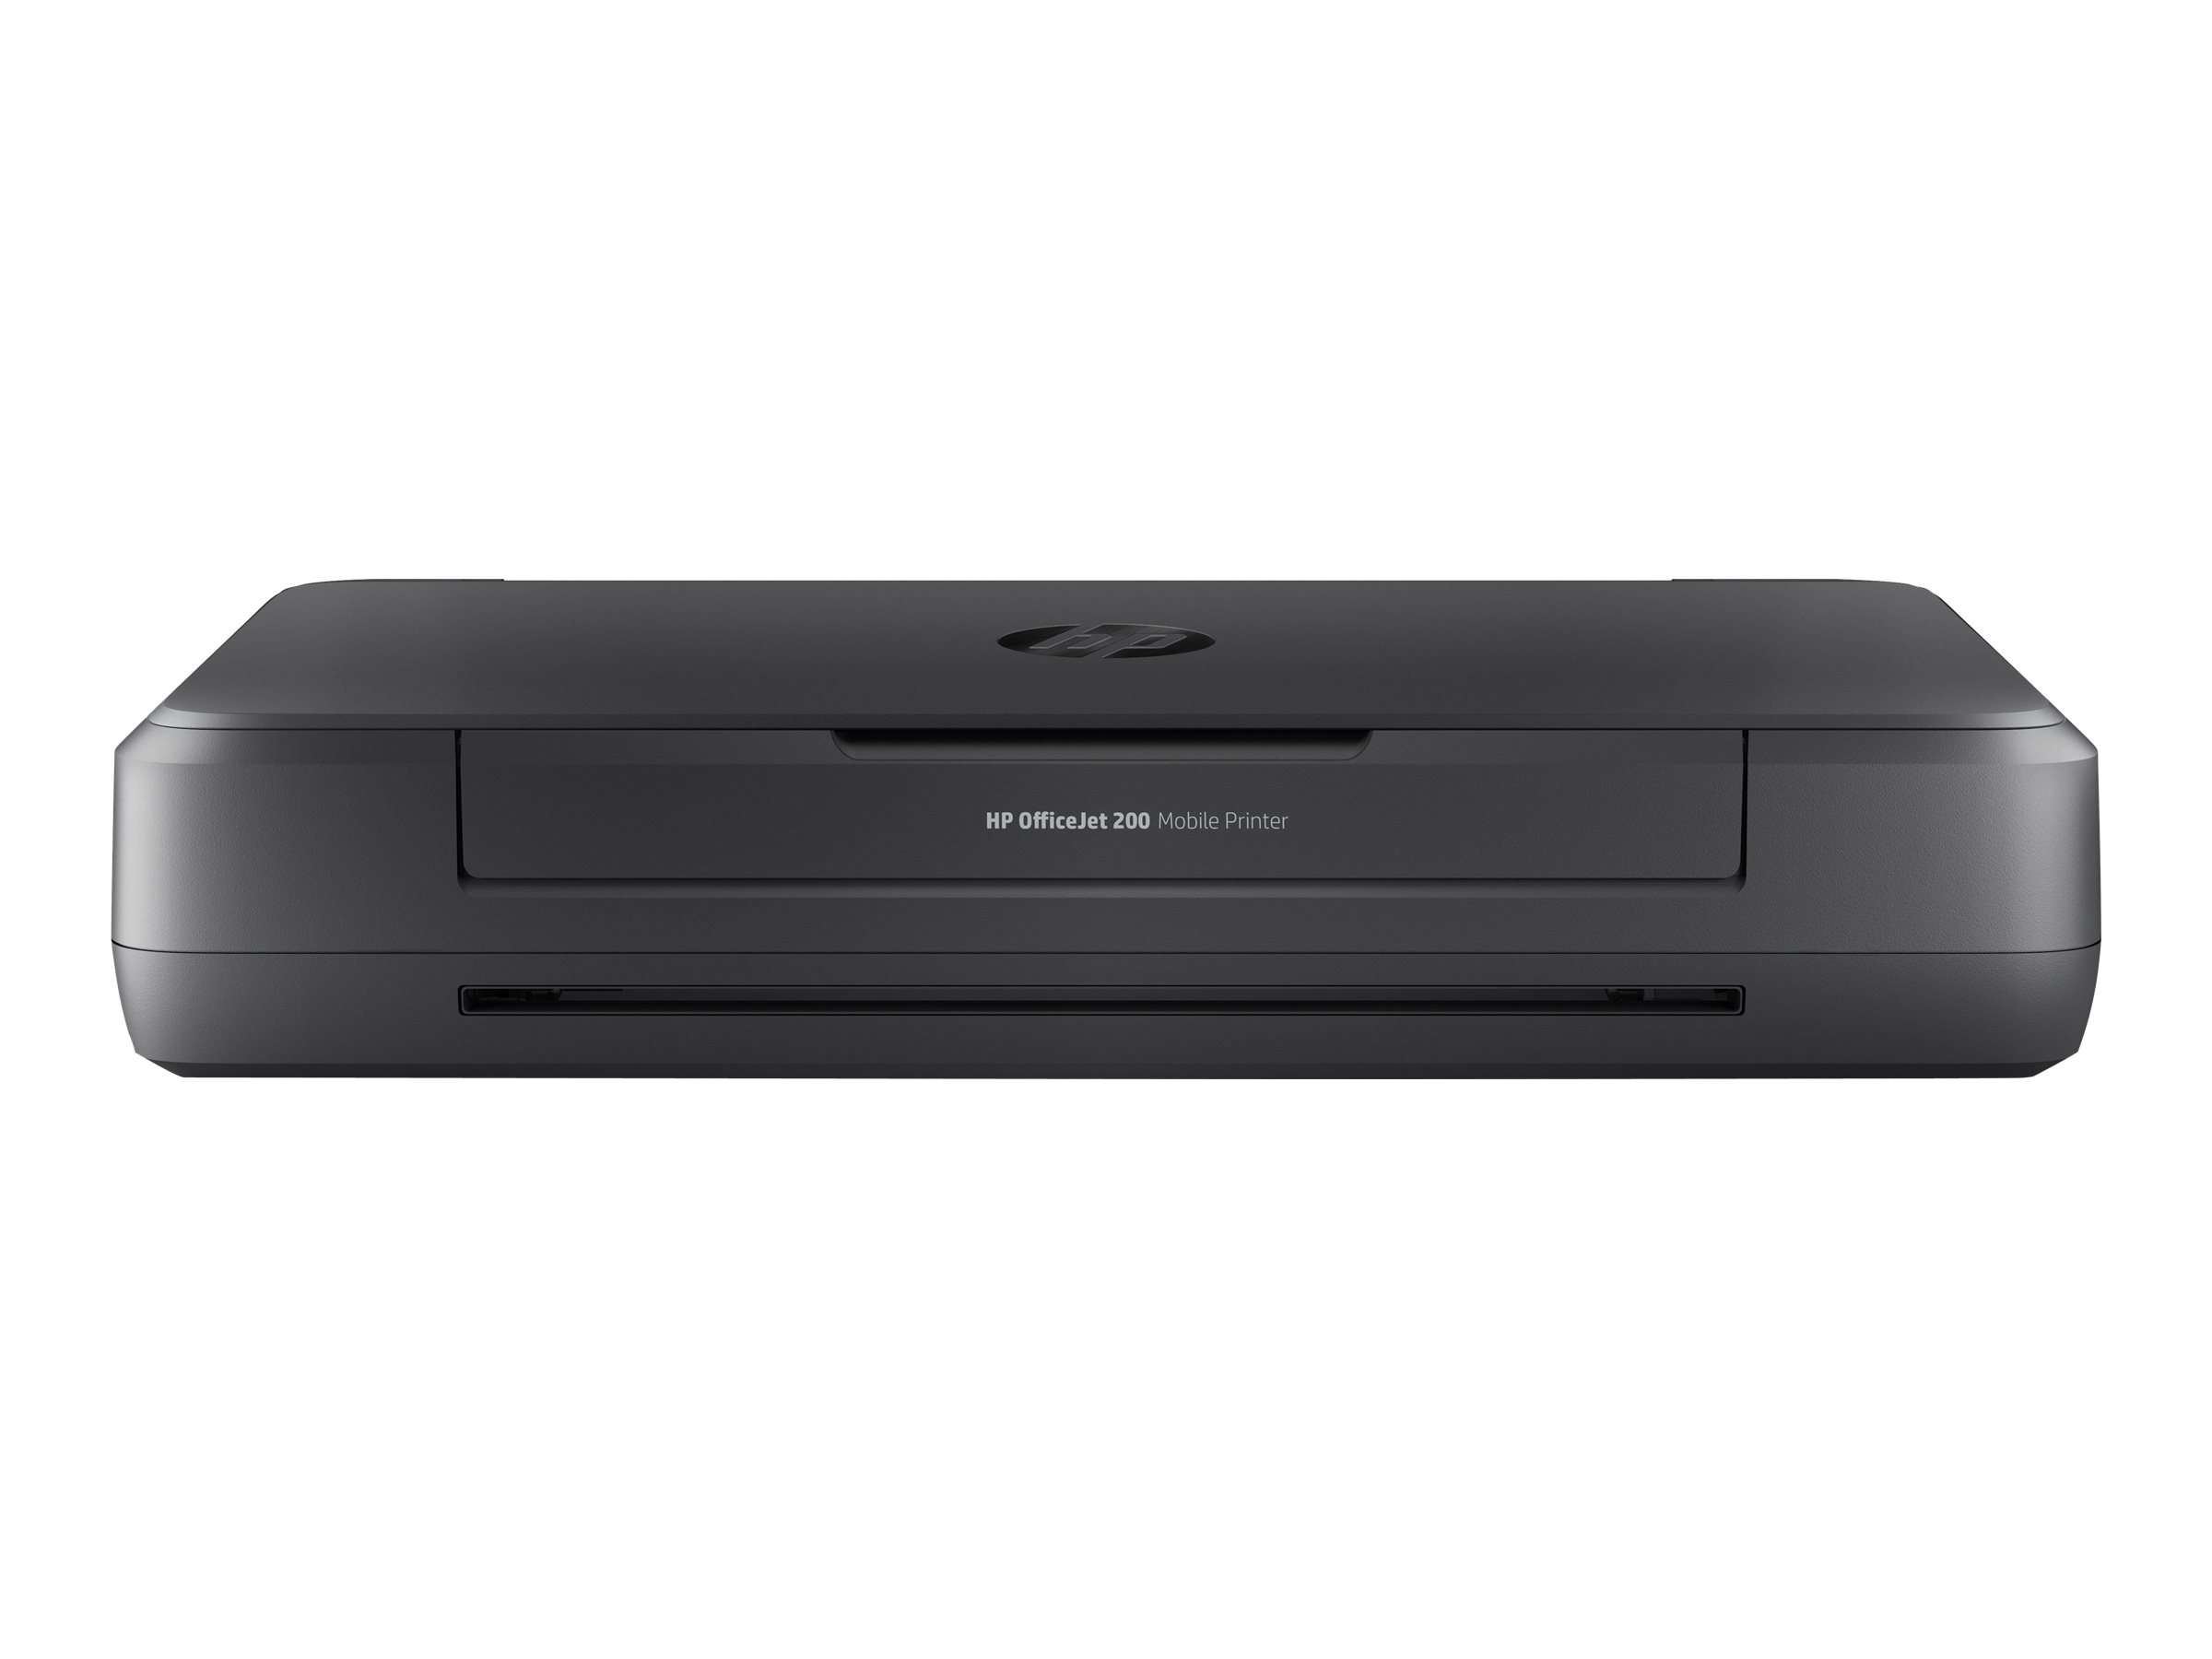 hp officejet 200 mobile printer cz993a cz993a b1h christmas gift